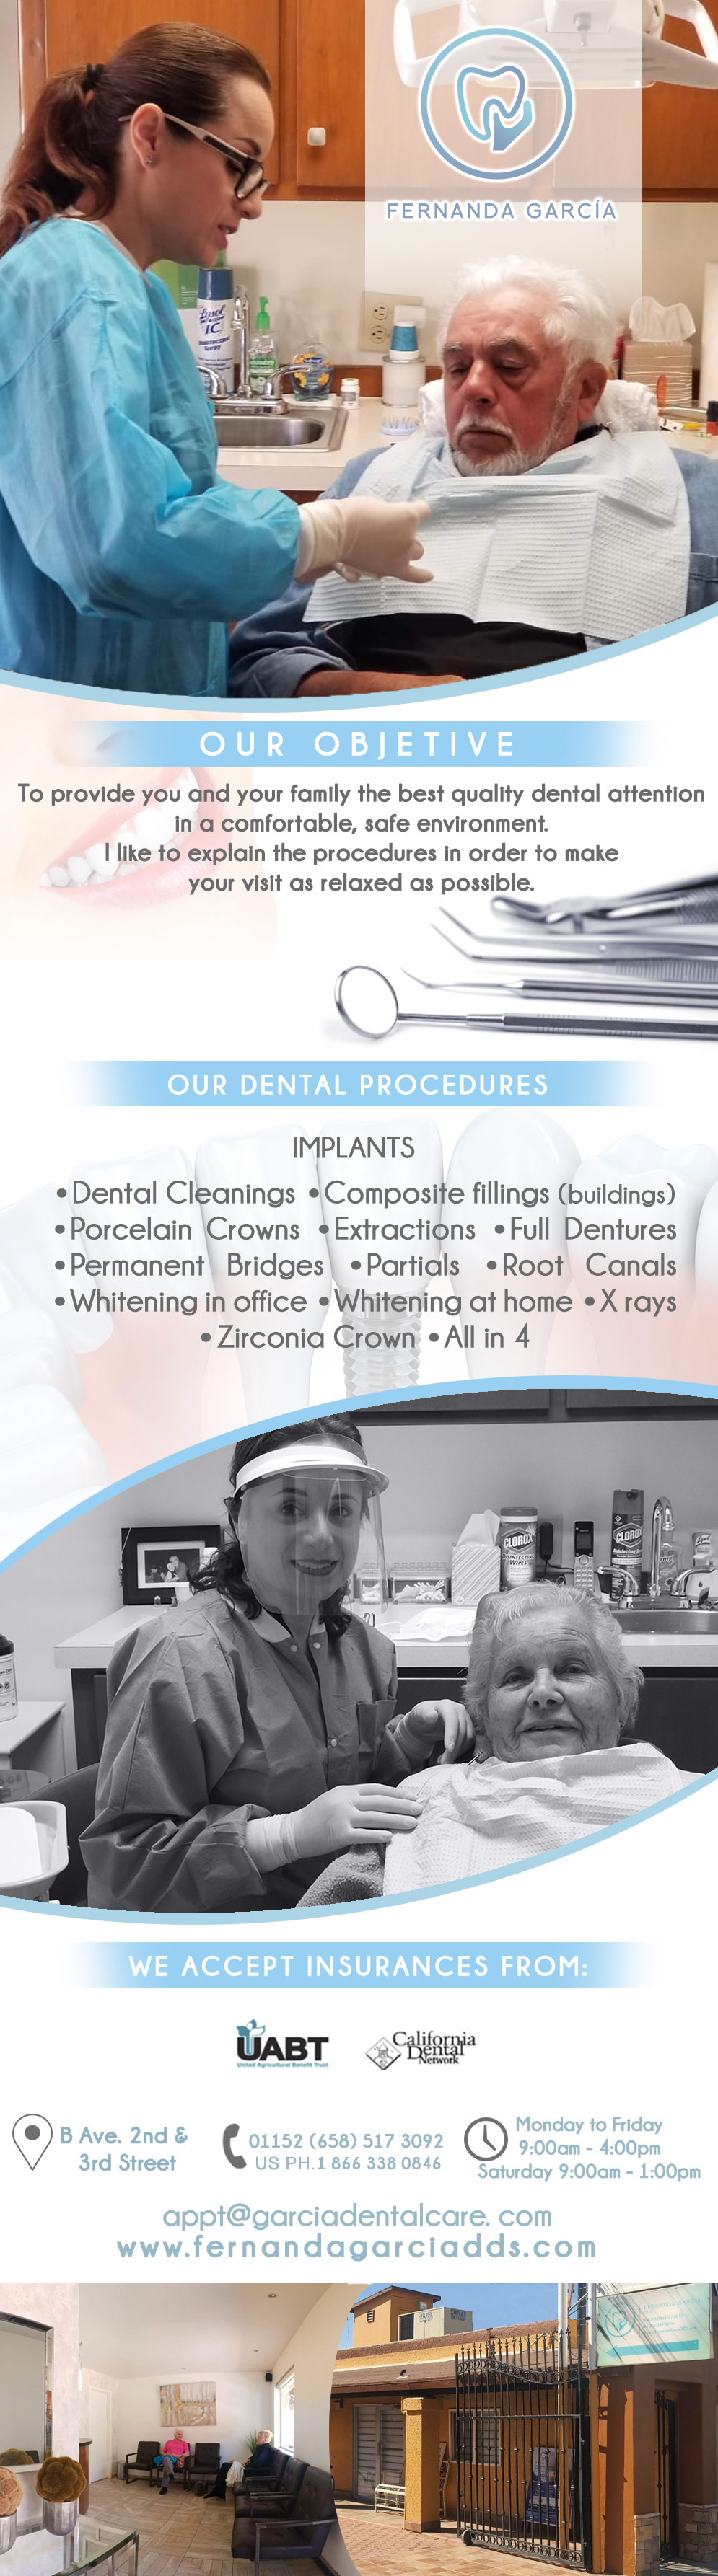 GARCIA DENTAL CARE Fernanda García Blas DDS in Algodones  in Algodones  My objective is to provide you and your family the best quality dental attention in a comfortable, safe environment. I like to explain the procedures in order to make your visit as relaxed as possible.